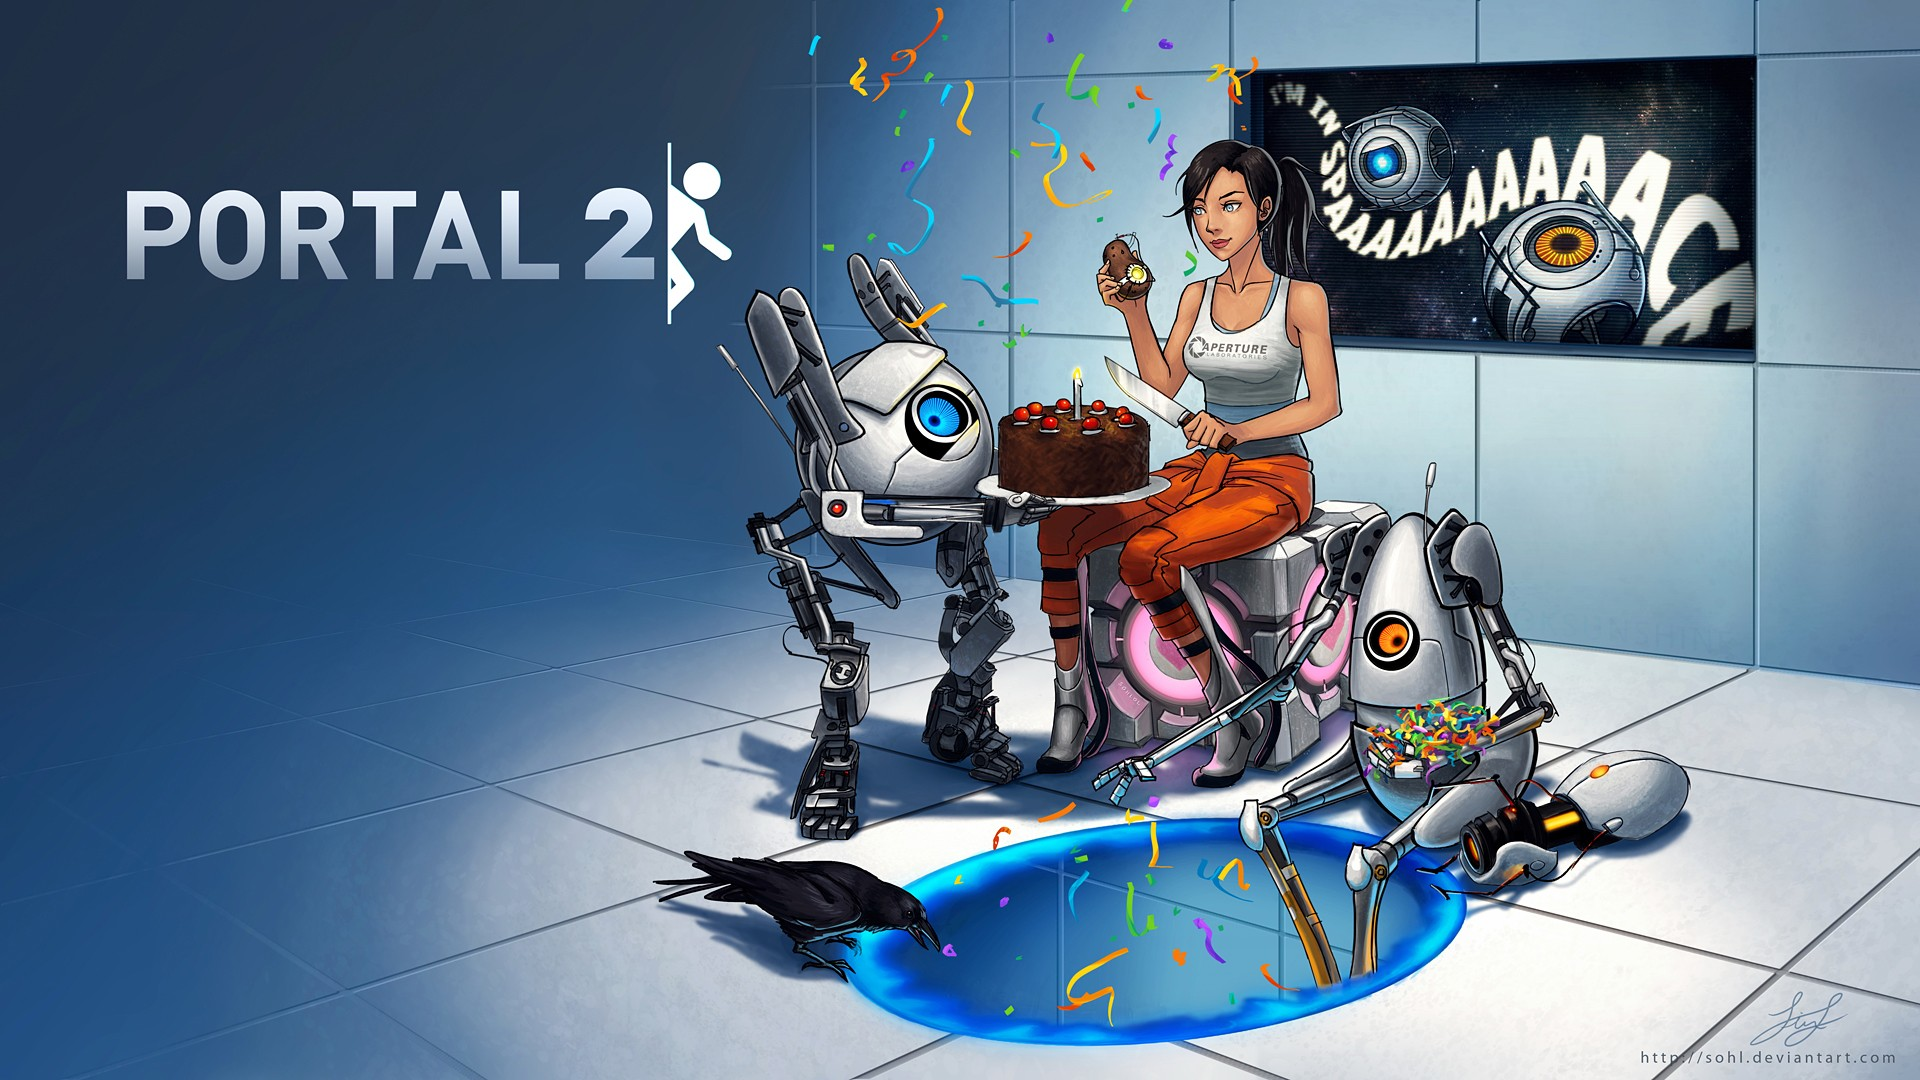 2 portals The achievement for getting 50 portals, now you're thinking, is a reference to the games portal and portal 2, as one of the series' taglines is now you're thinking with portals the achievement for getting 200 portals, realm of the mad god.